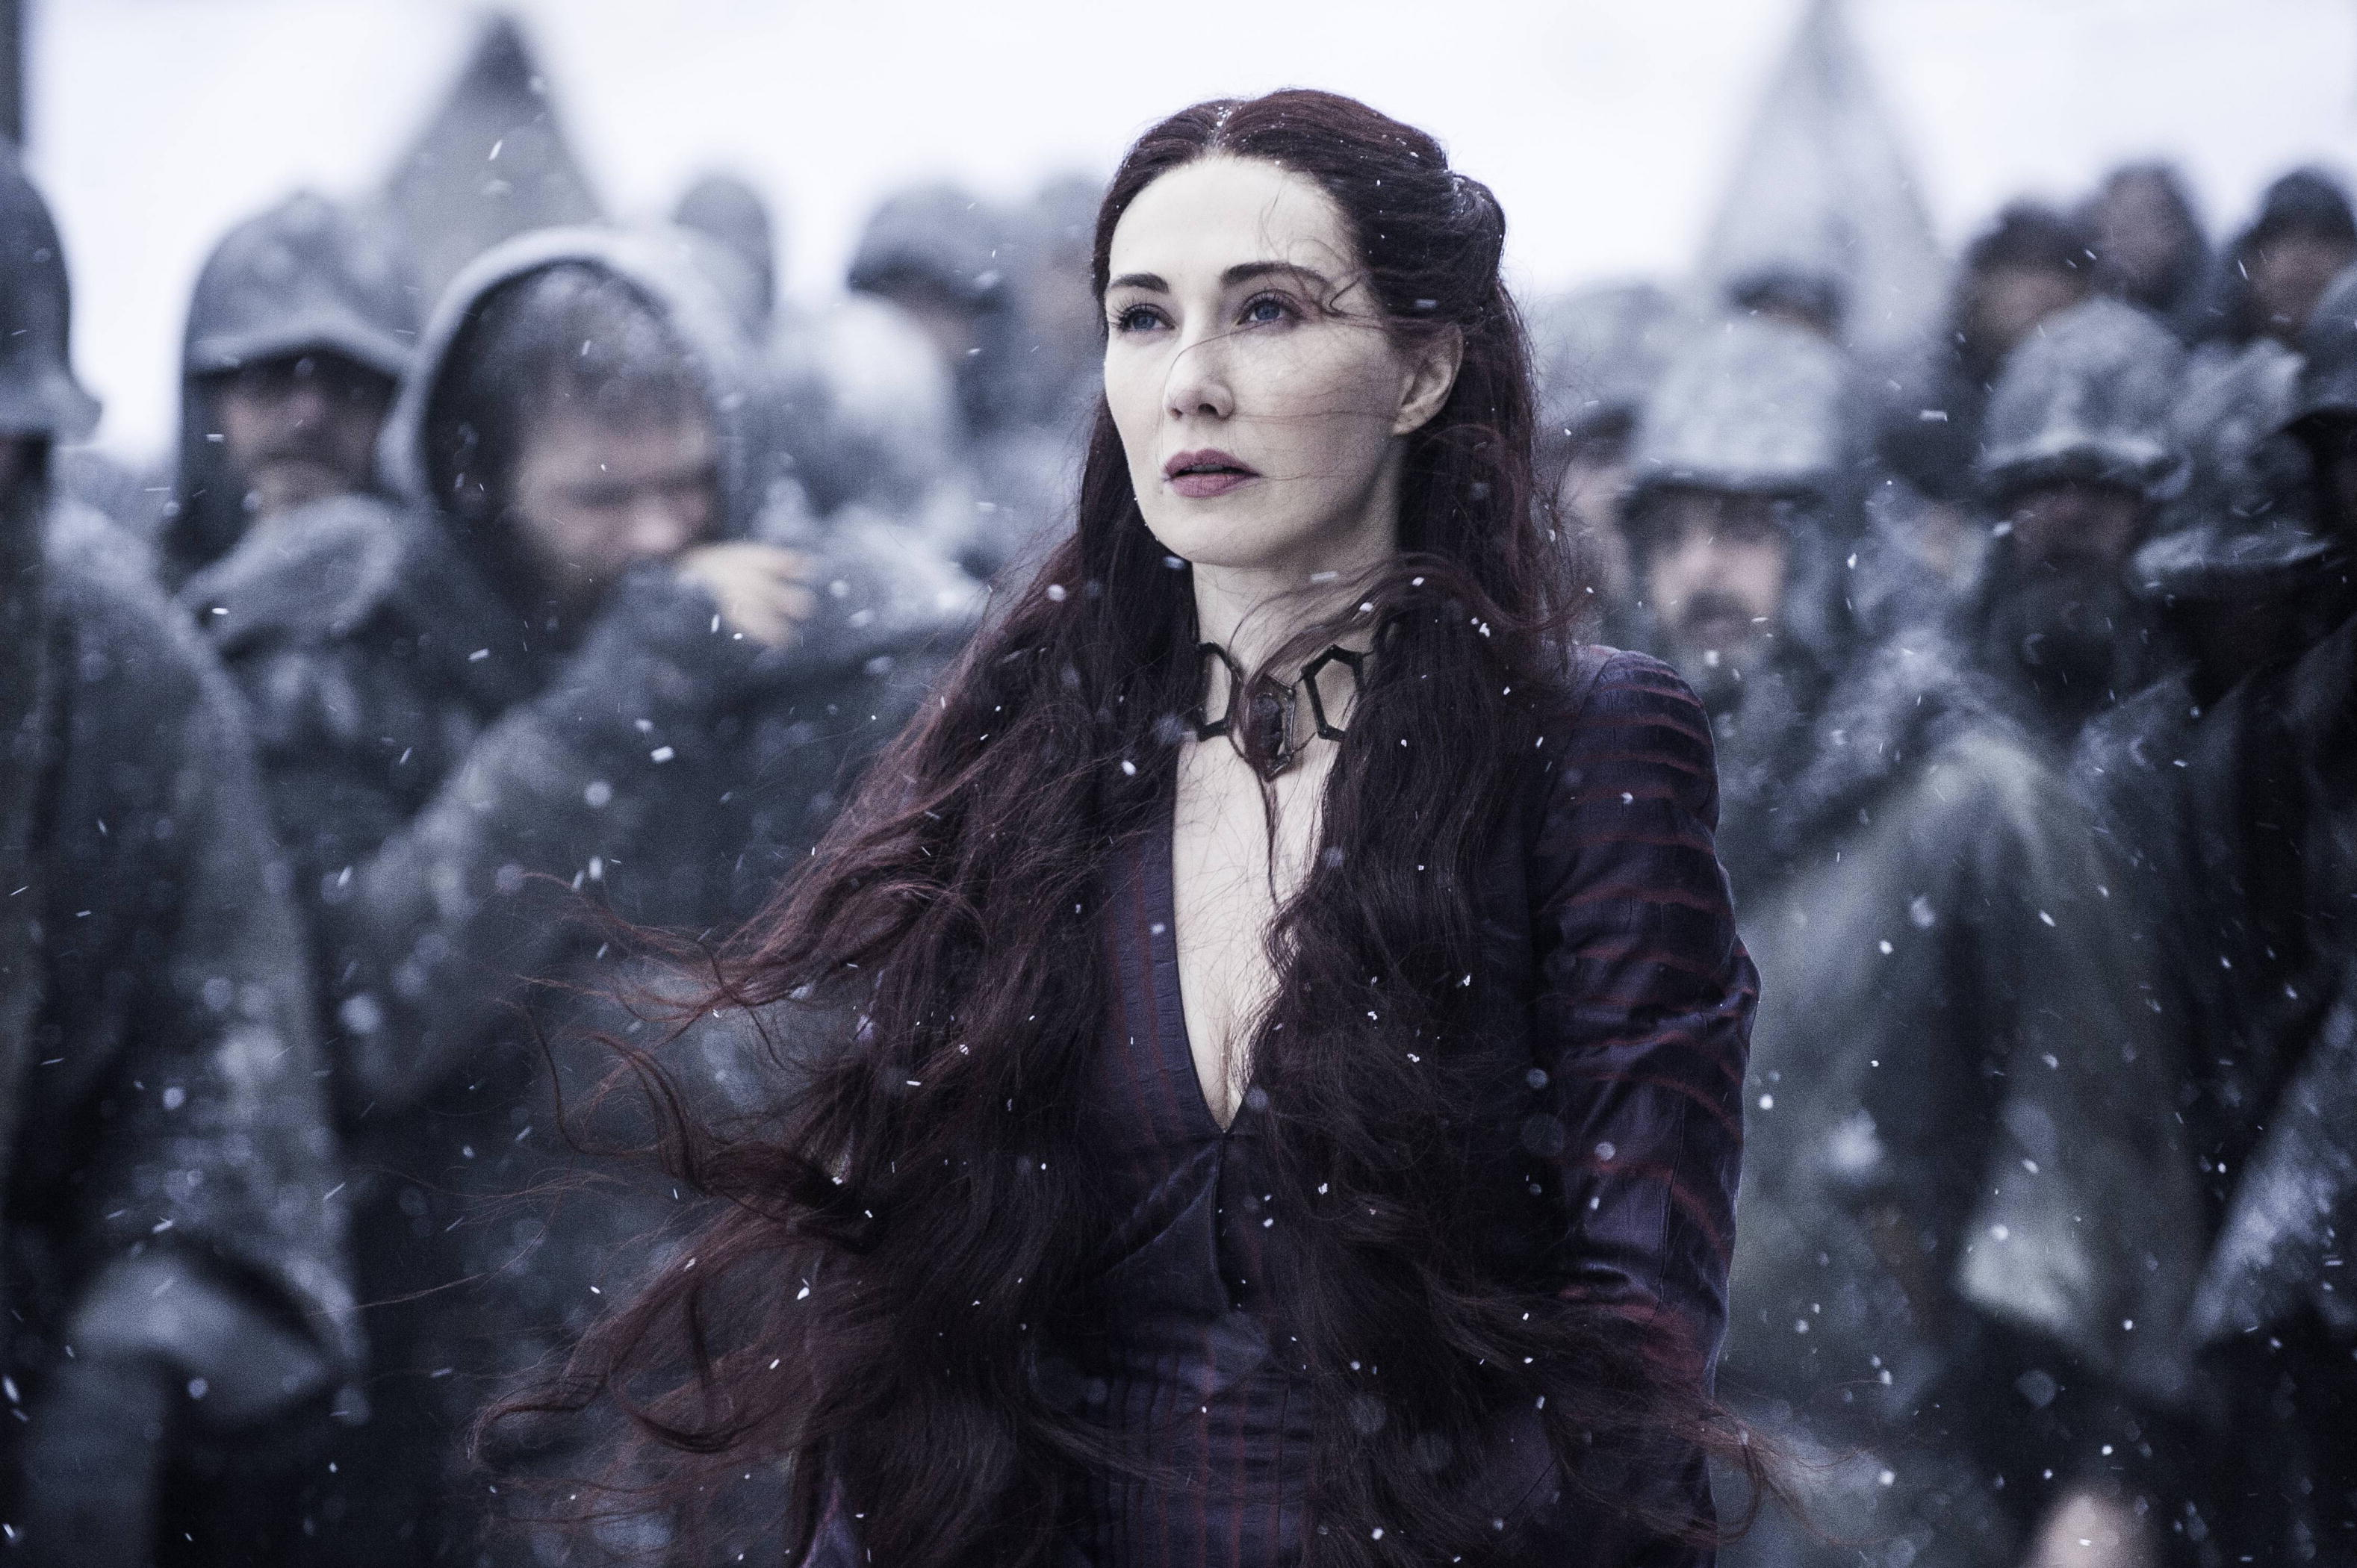 Sexy Wallpaper Gallery for Game Of Thrones Star Carice van Houten